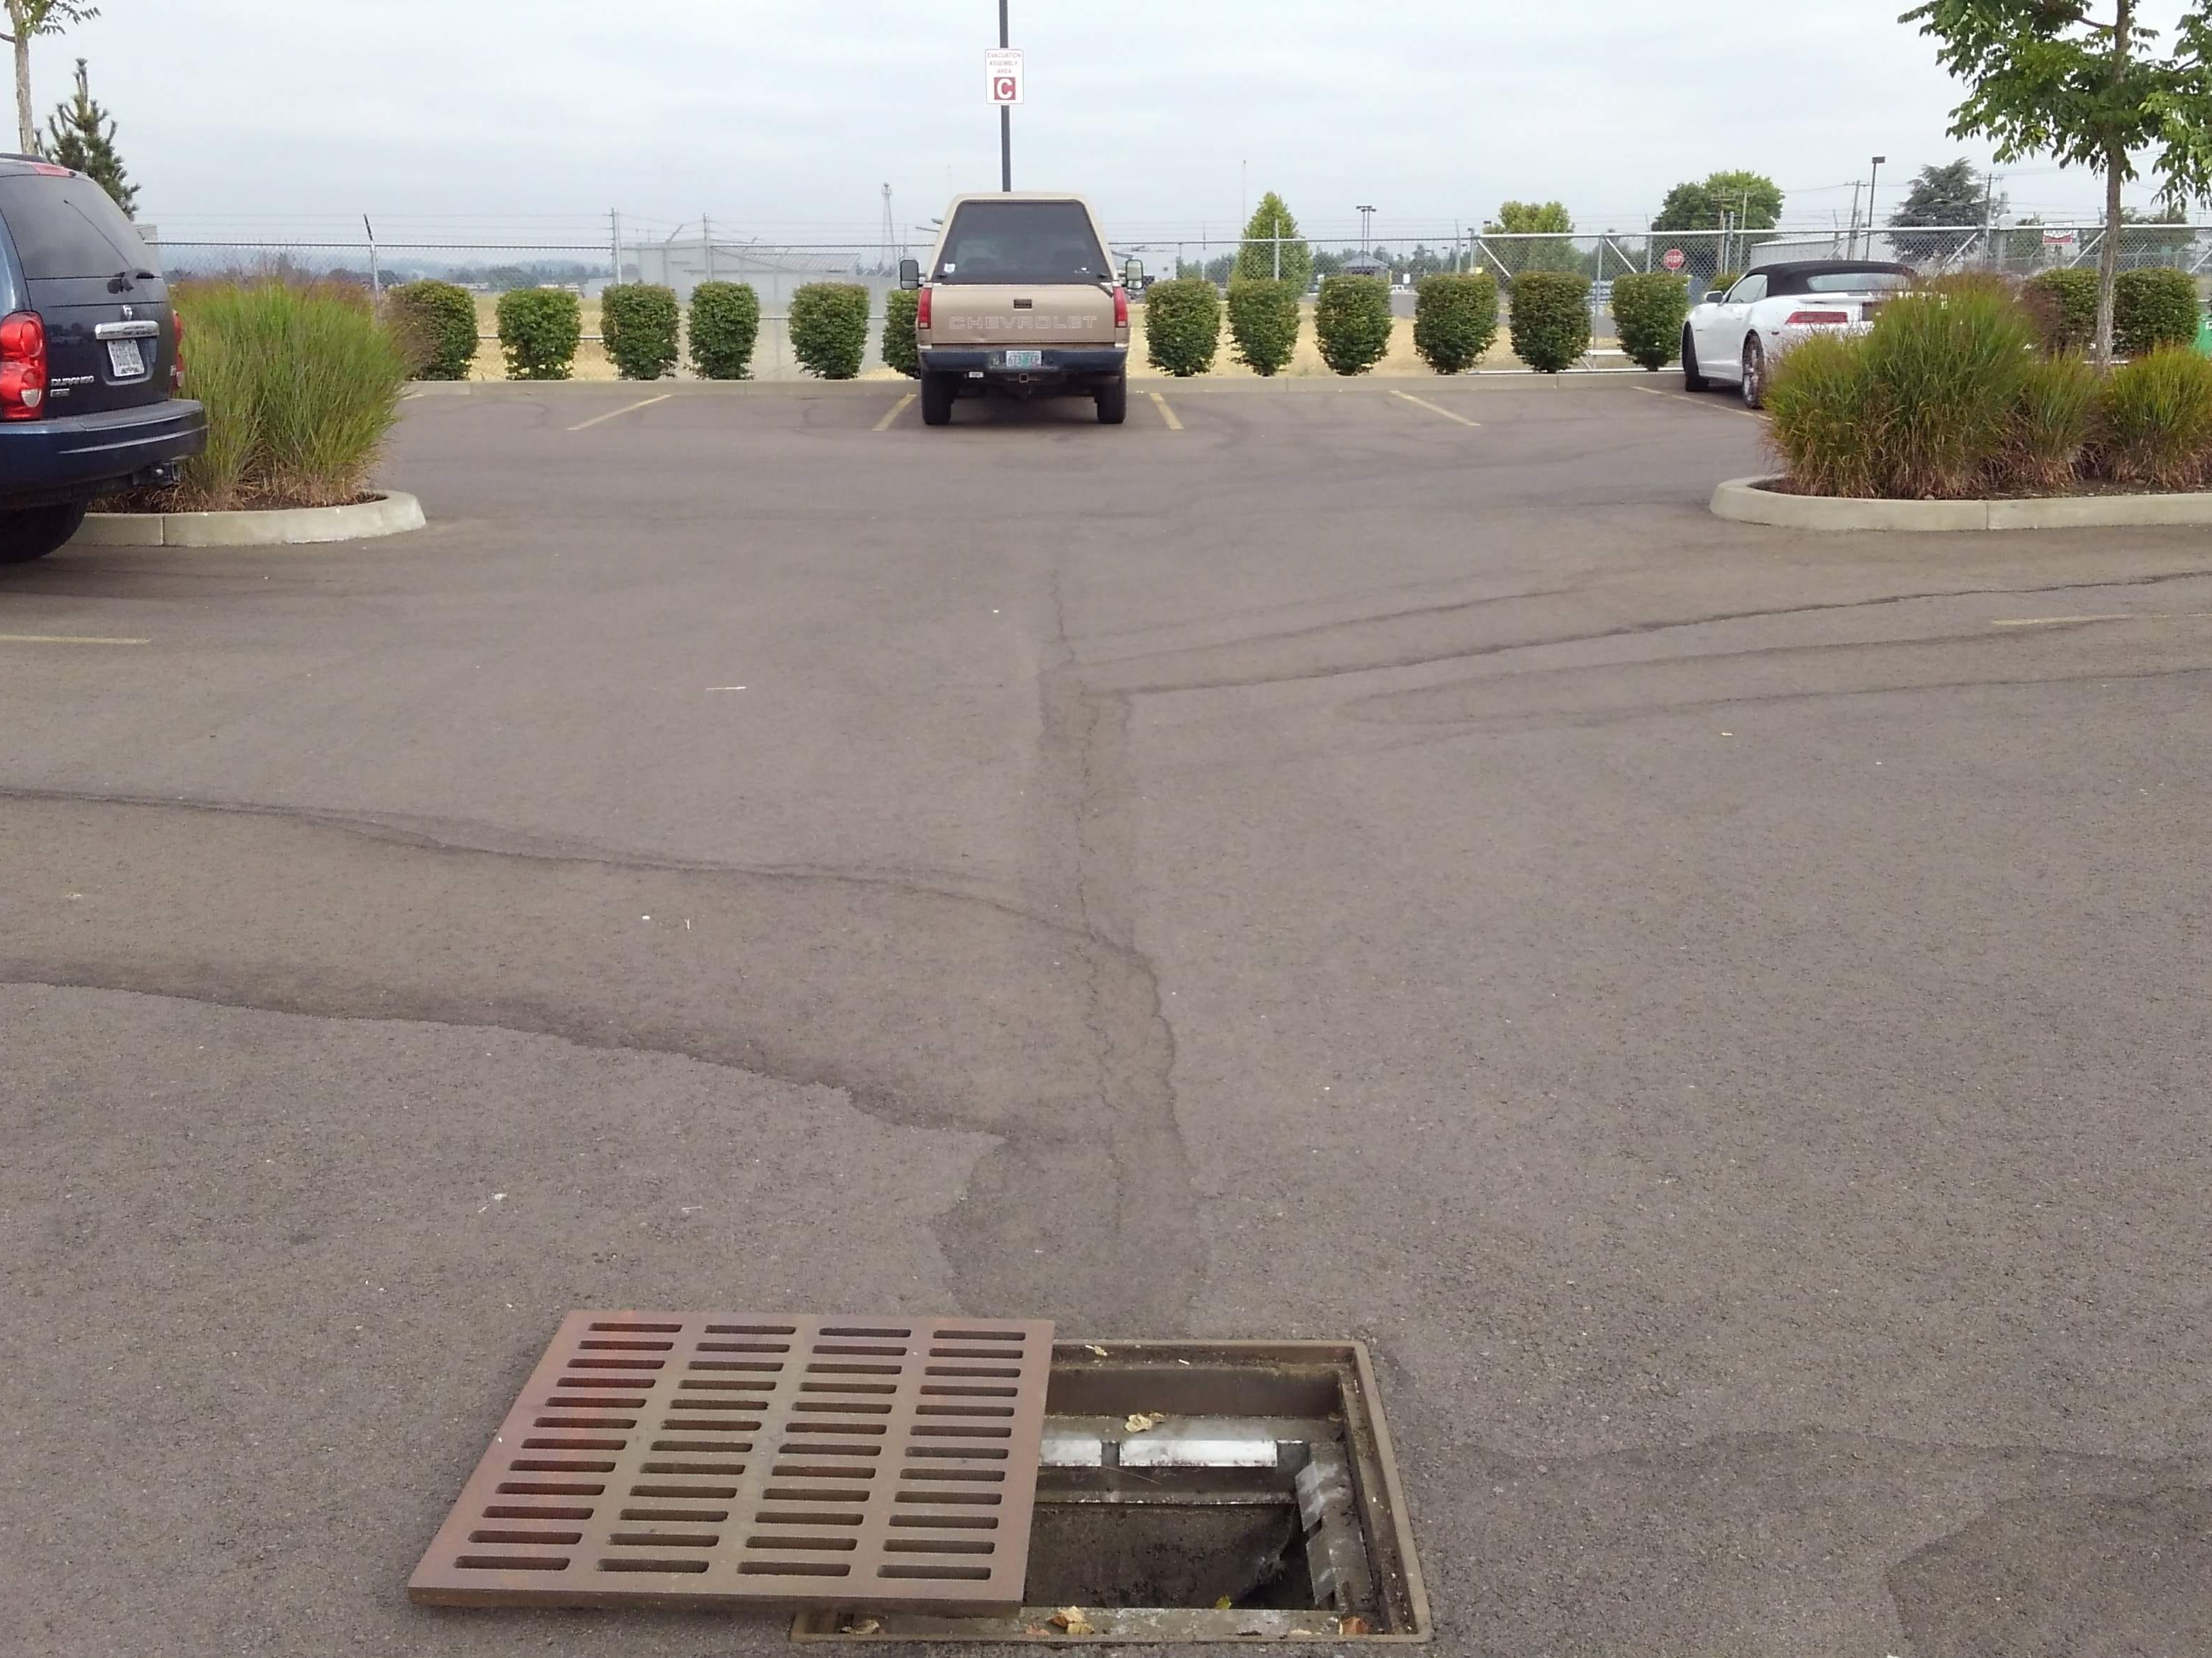 The drain with flogaurd and catch basin inserts at the Garmin parking lot on Turner Rd SE is an example of the type of on-site stormwater retention projects that would be required of developers in smaller cities under the new permit.